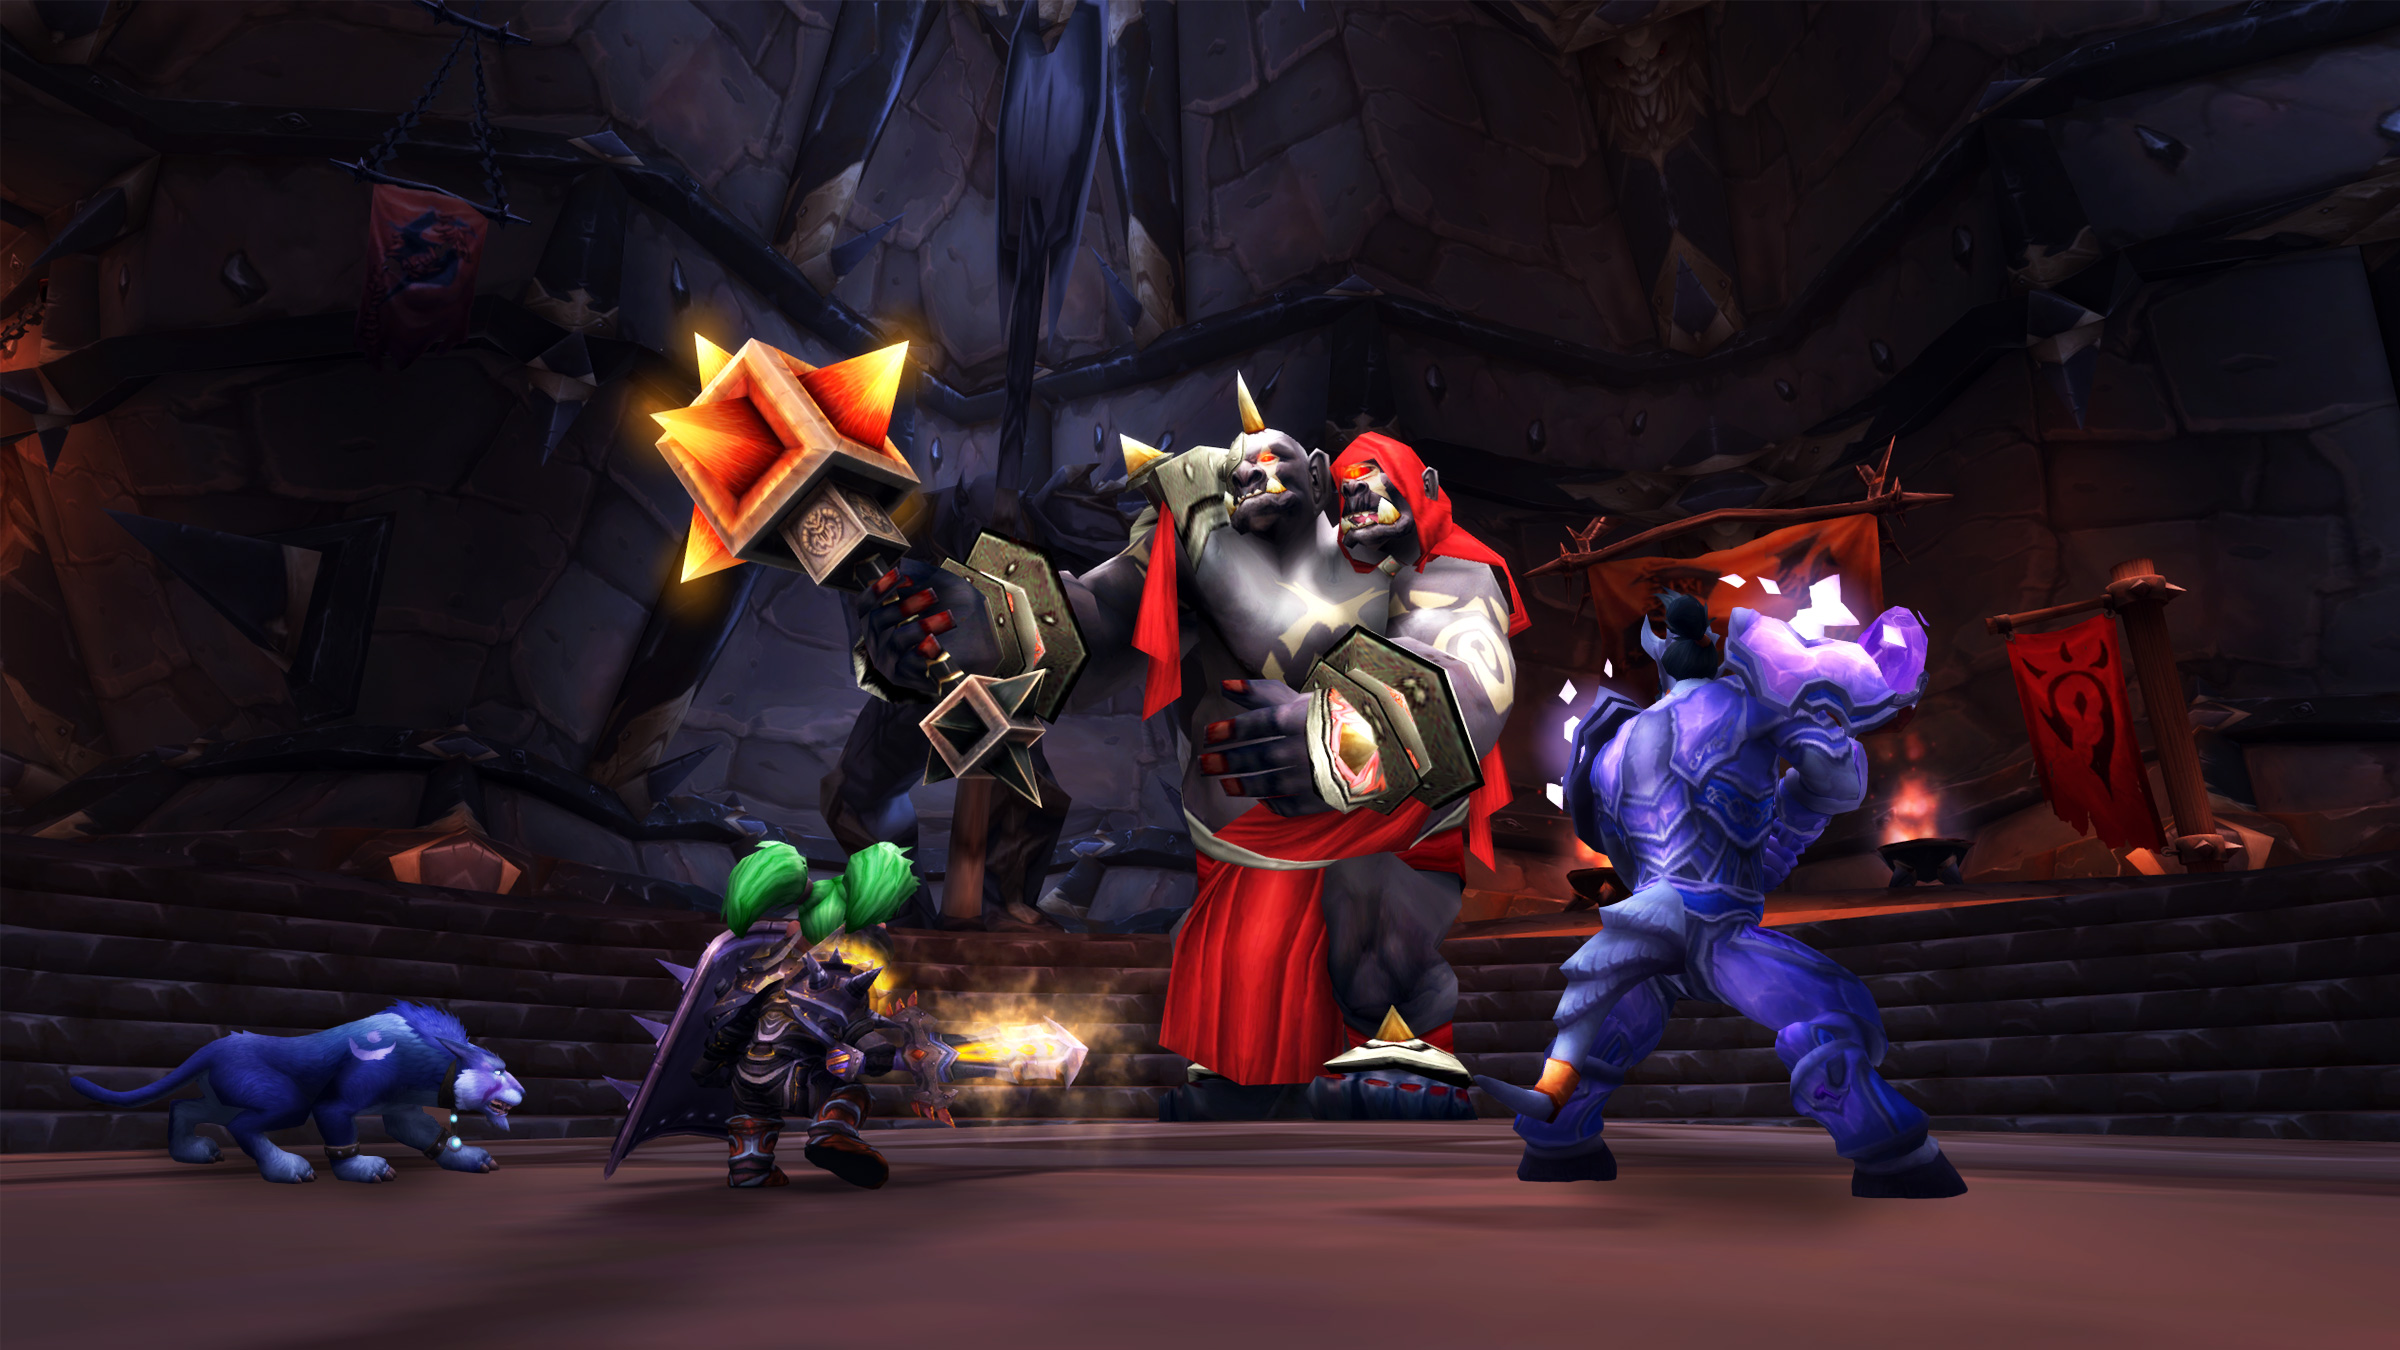 Weekly Bonus Event: Burning Crusade Timewalking